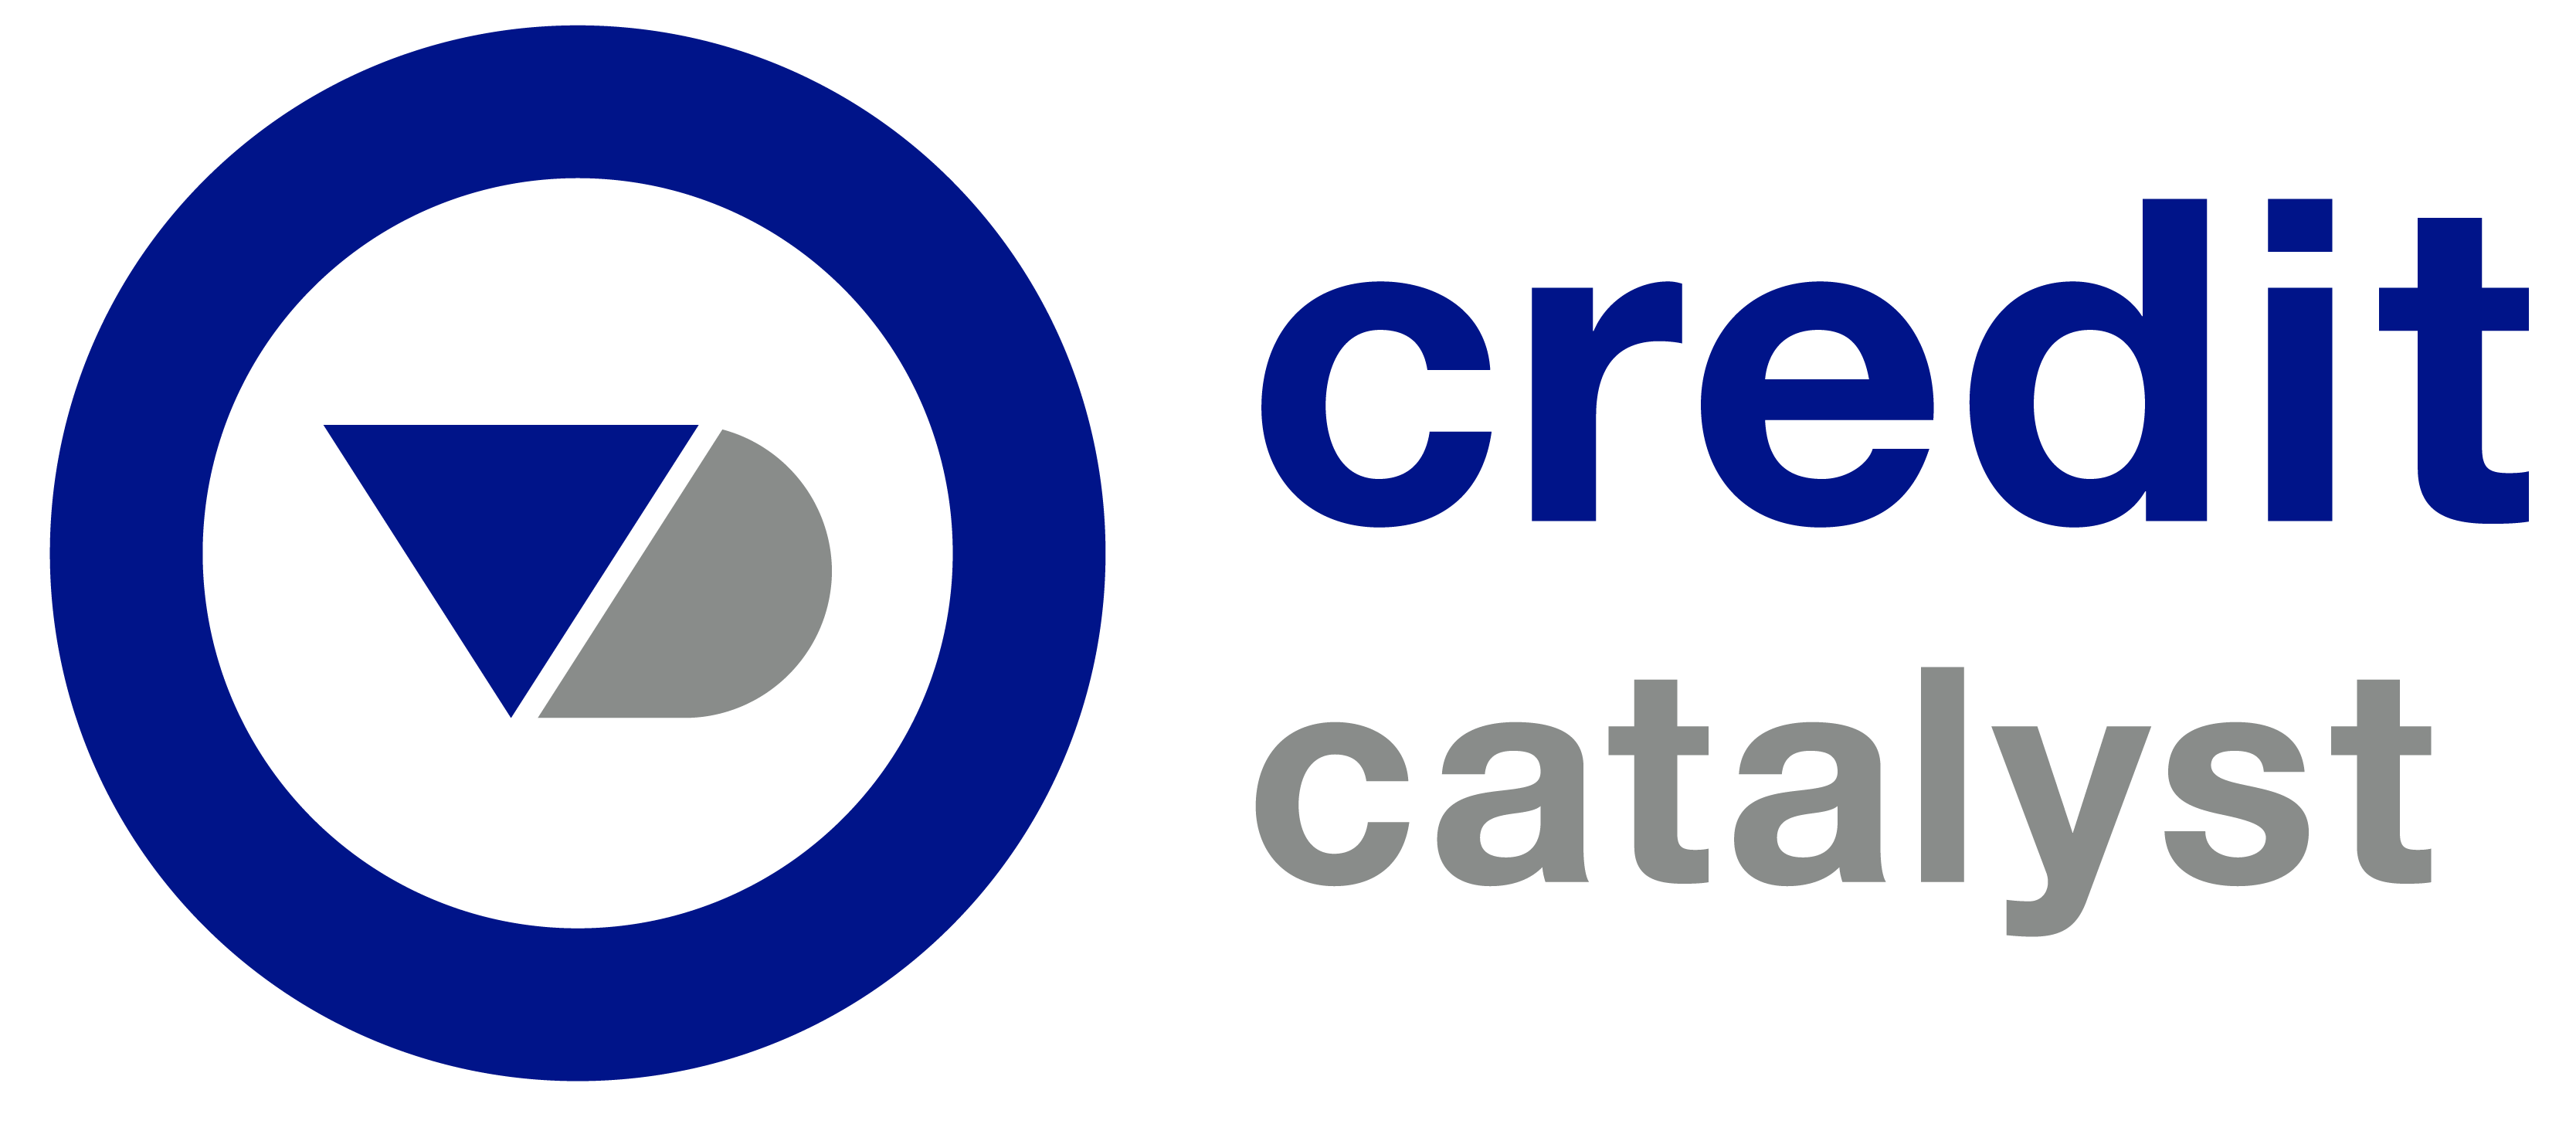 Credit Catalyst logo